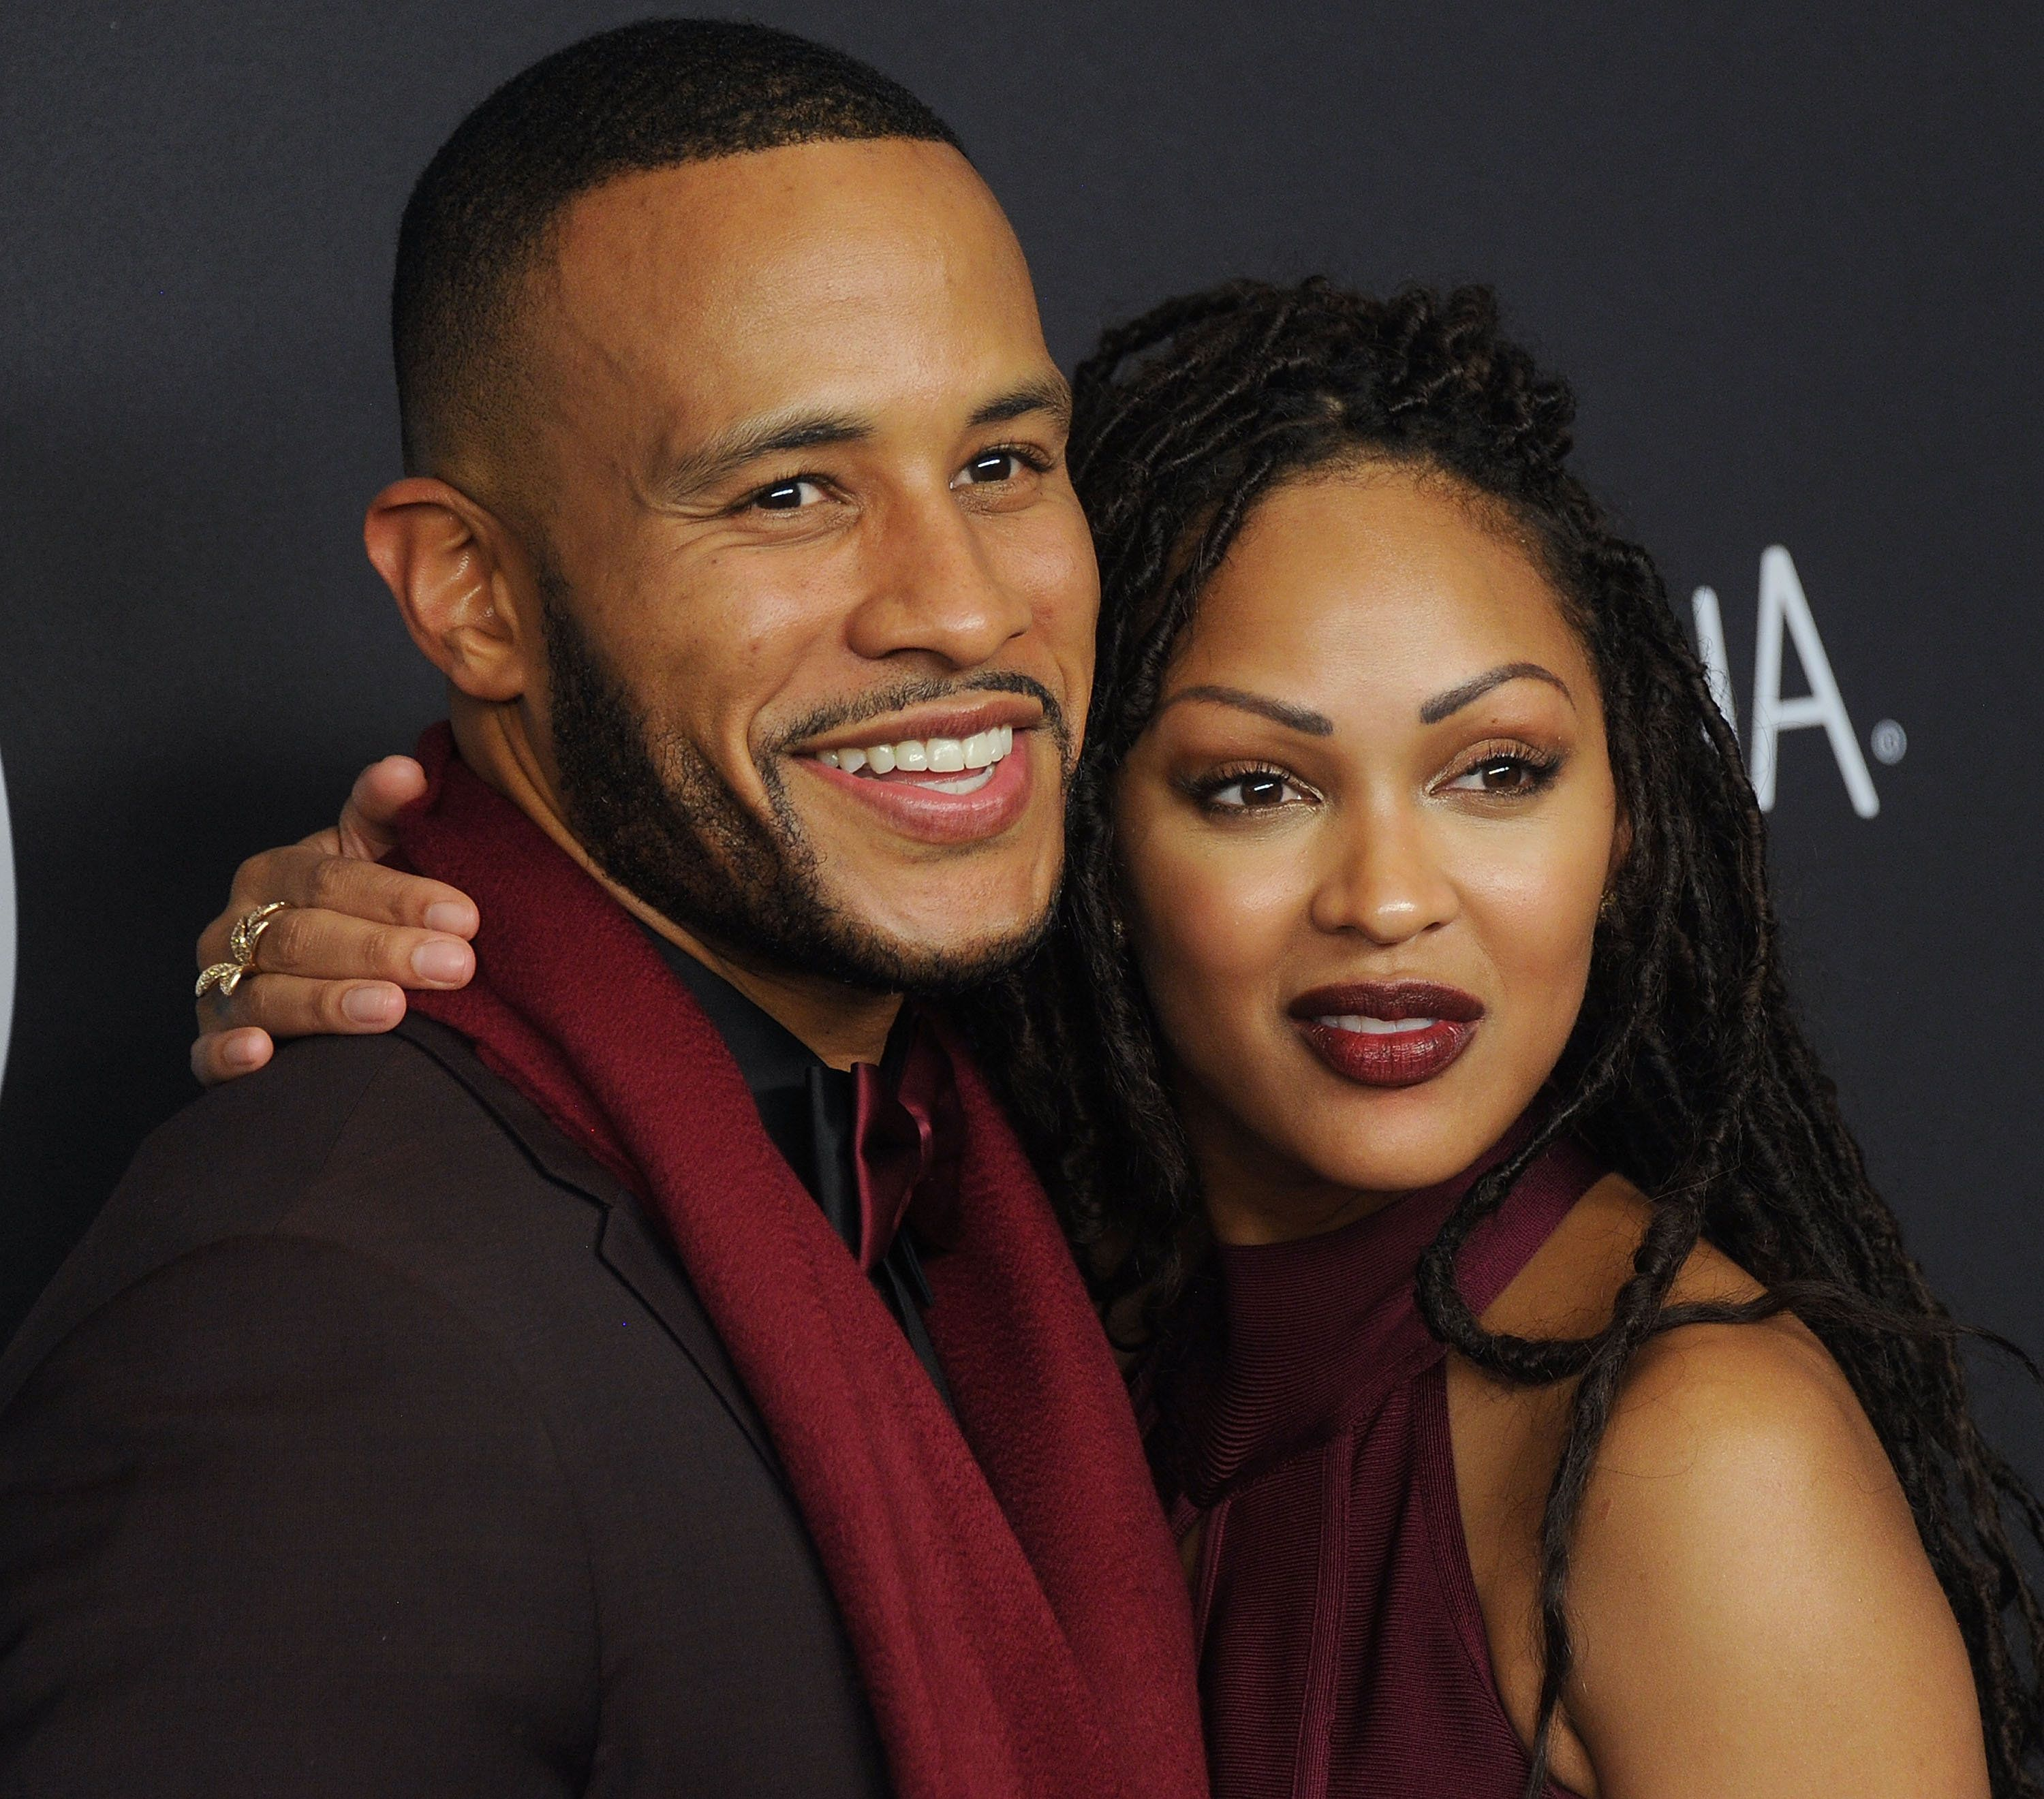 BEVERLY HILLS, CA - JANUARY 10:  Actress Meagan Good and DeVon Franklin arrive at the 2016 InStyle And Warner Bros. 73rd Annual Golden Globe Awards Post-Party at The Beverly Hilton Hotel on January 10, 2016 in Beverly Hills, California.  (Photo by Gregg DeGuire/WireImage)